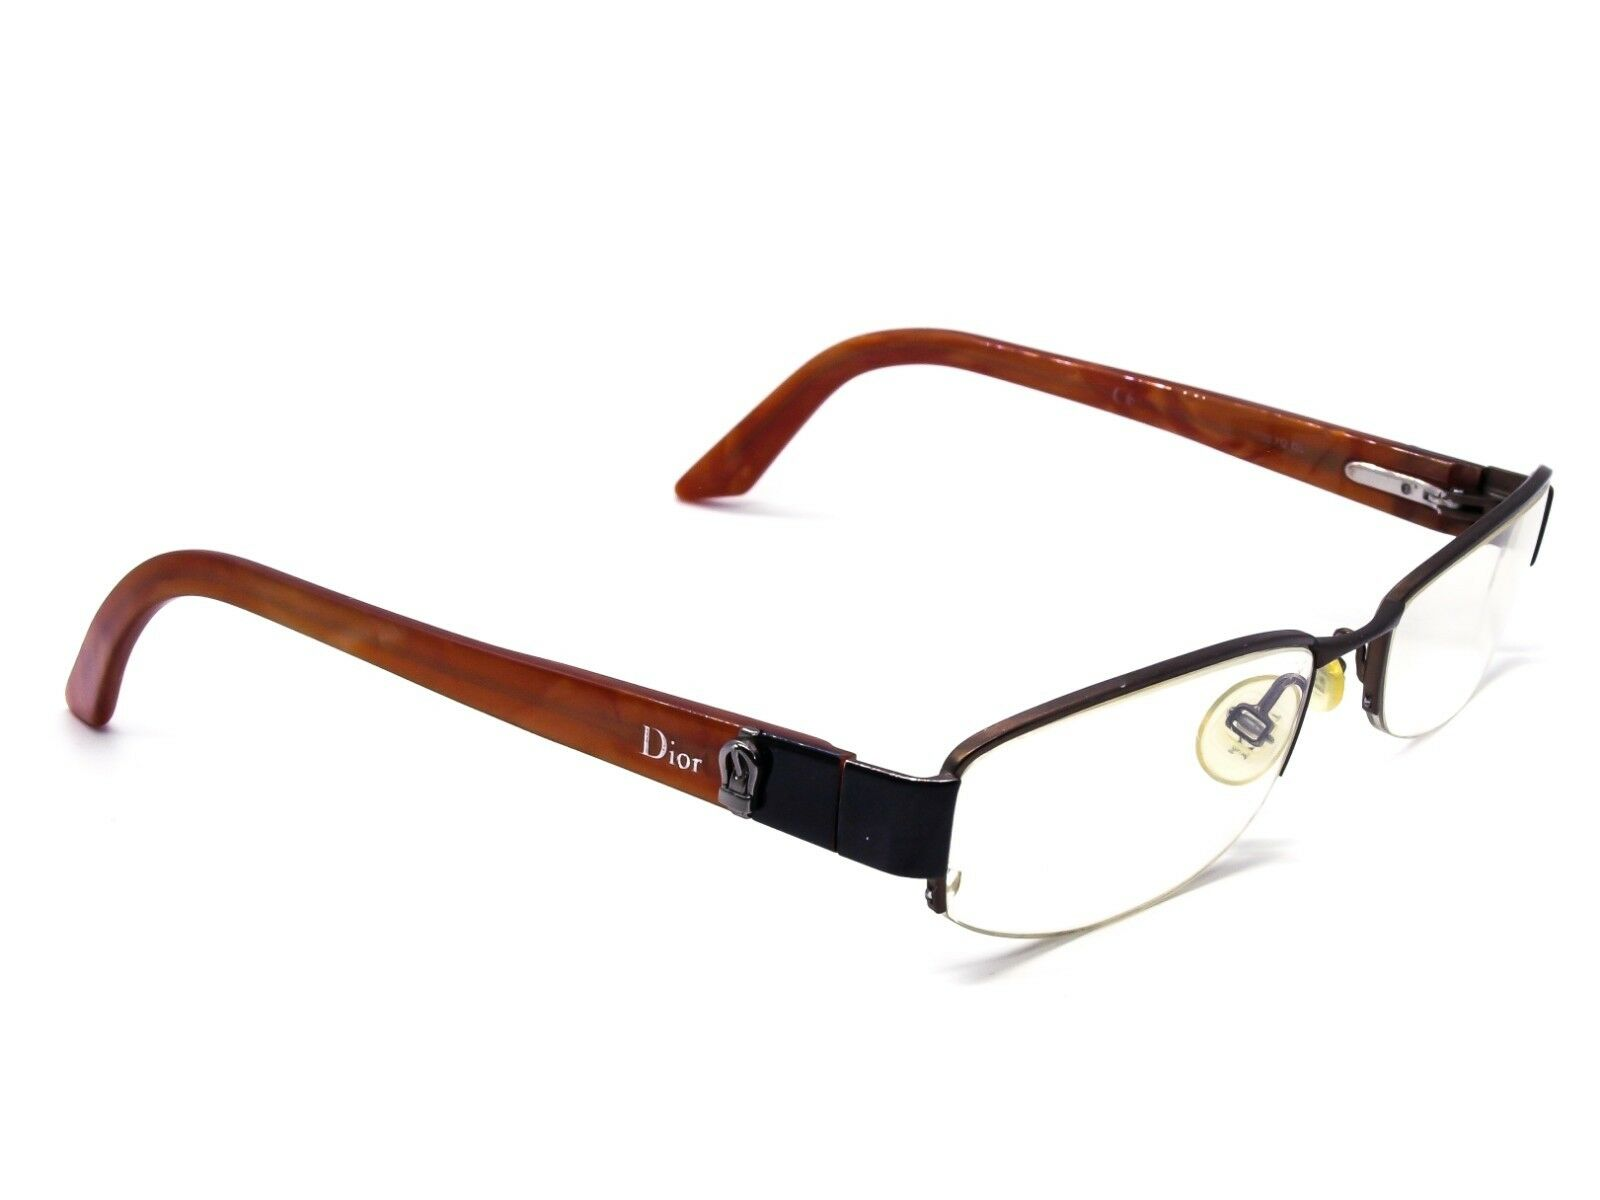 Dior CD3720 712 Eyeglasses